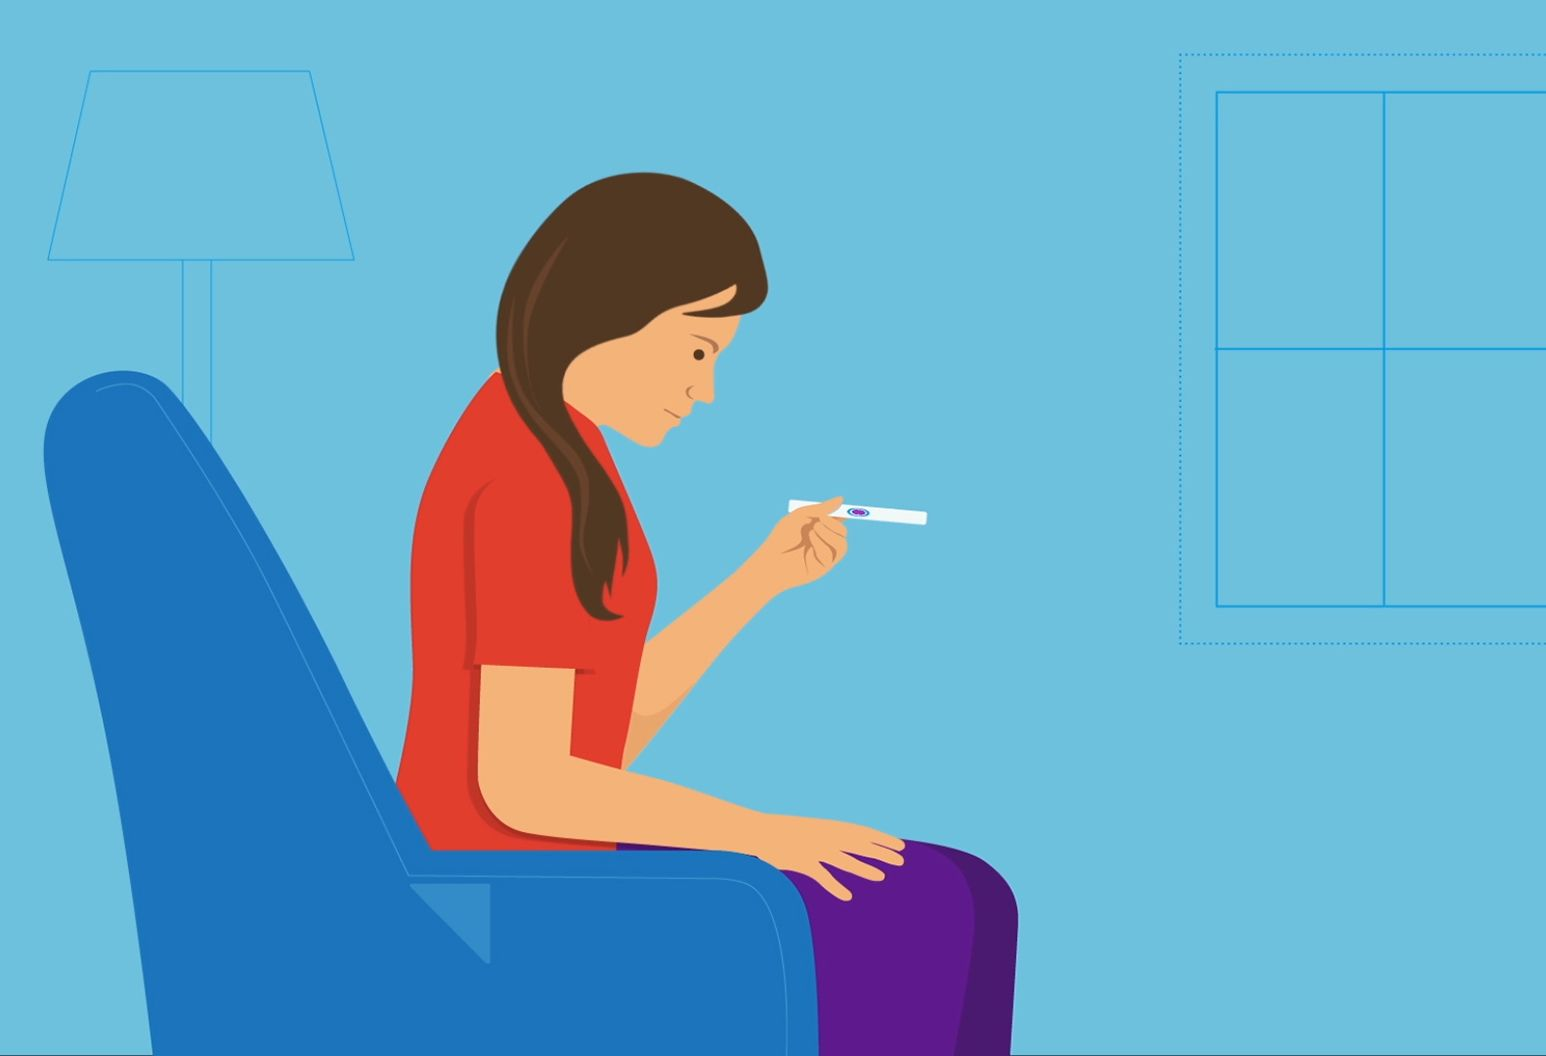 Illustration of Woman sitting with pregnancy test.